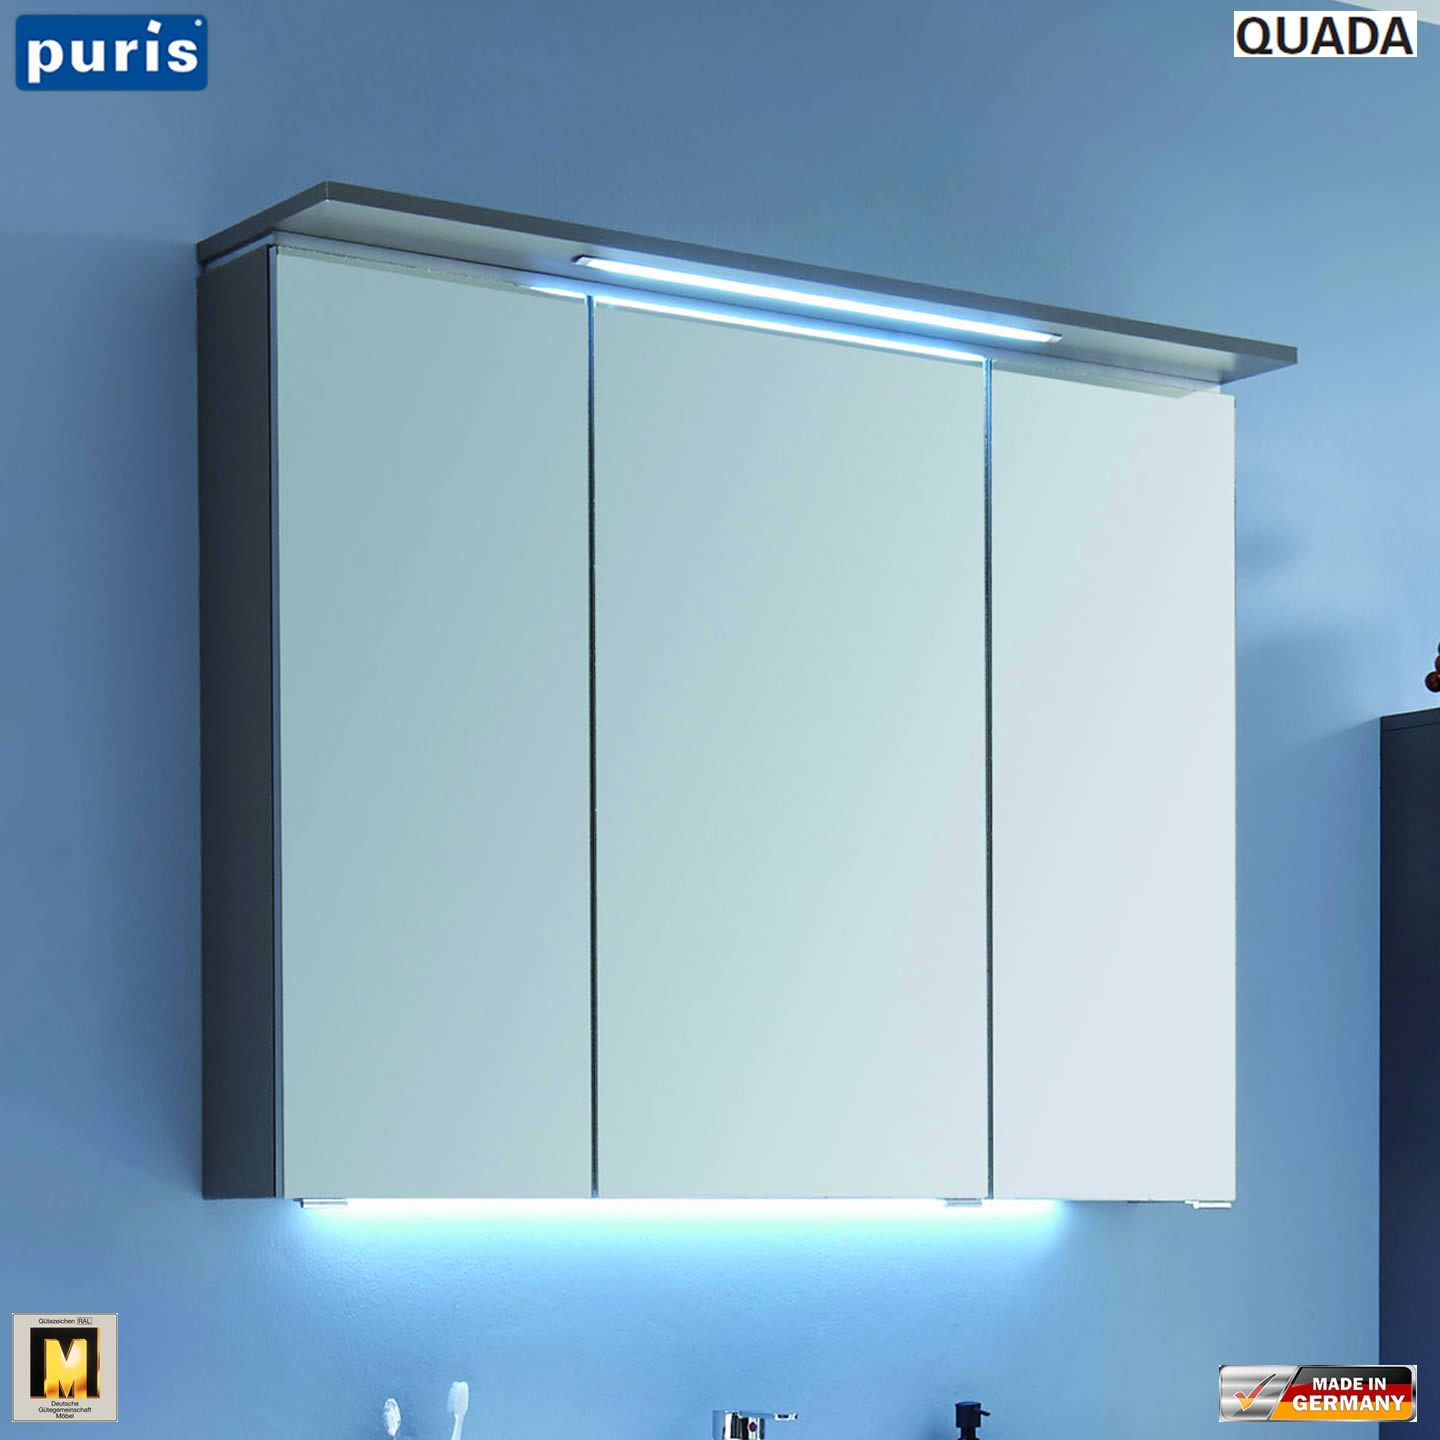 puris quada spiegelschrank 100 cm mit led im oberboden. Black Bedroom Furniture Sets. Home Design Ideas